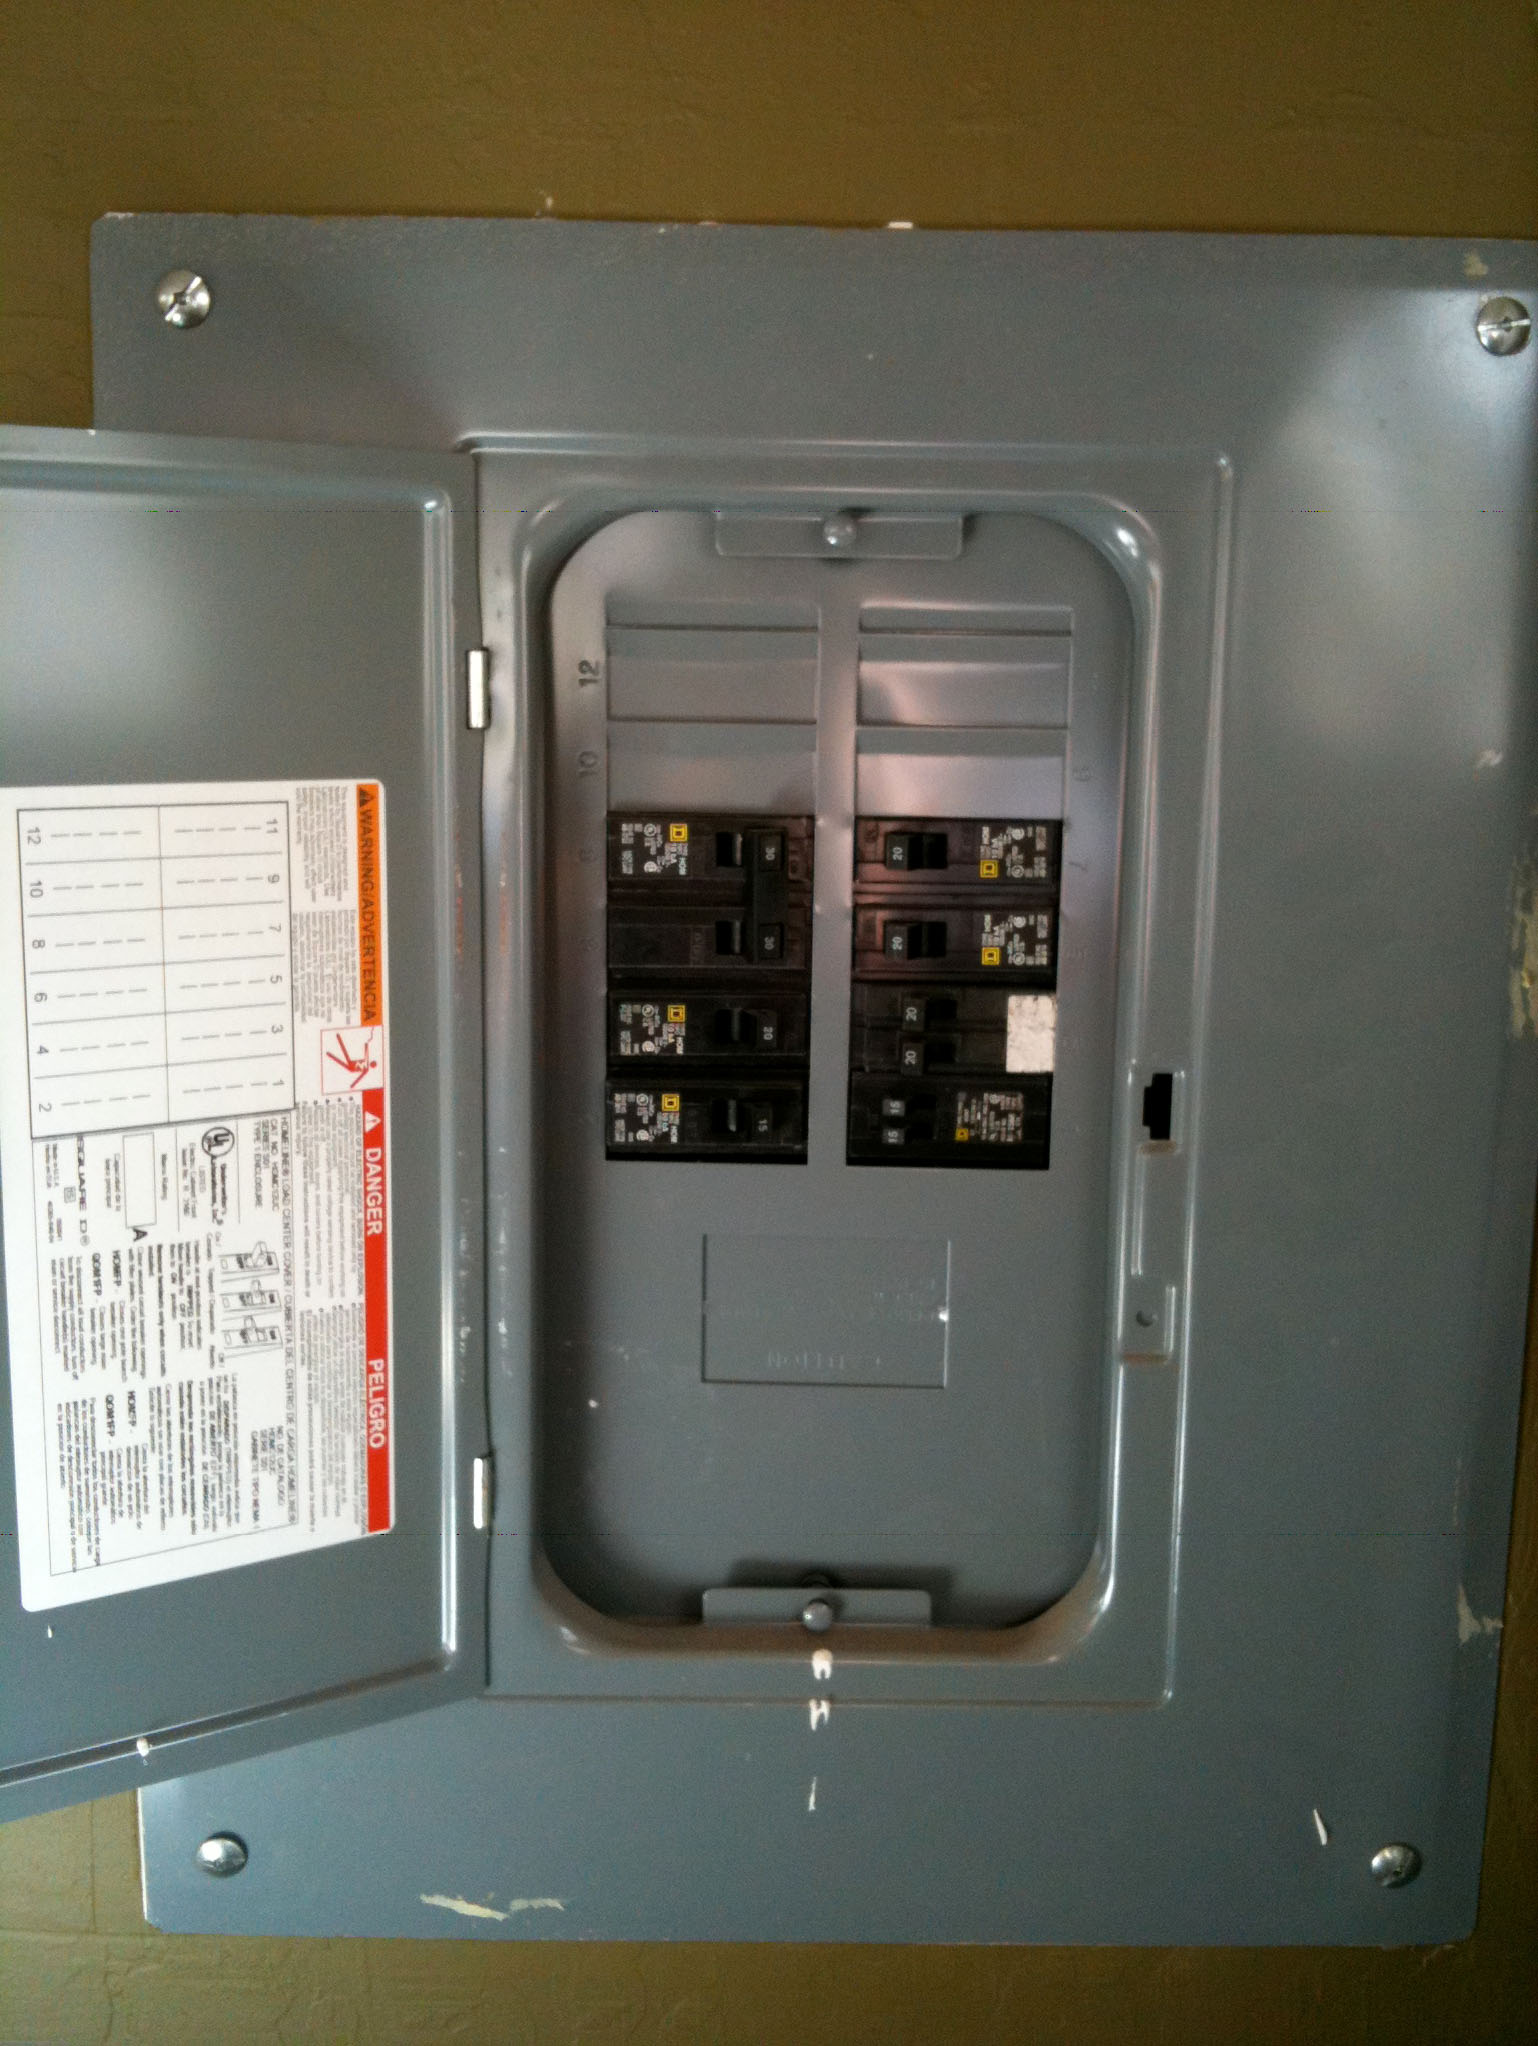 Sub Panel Upgrades, Troubleshooting & Repairs